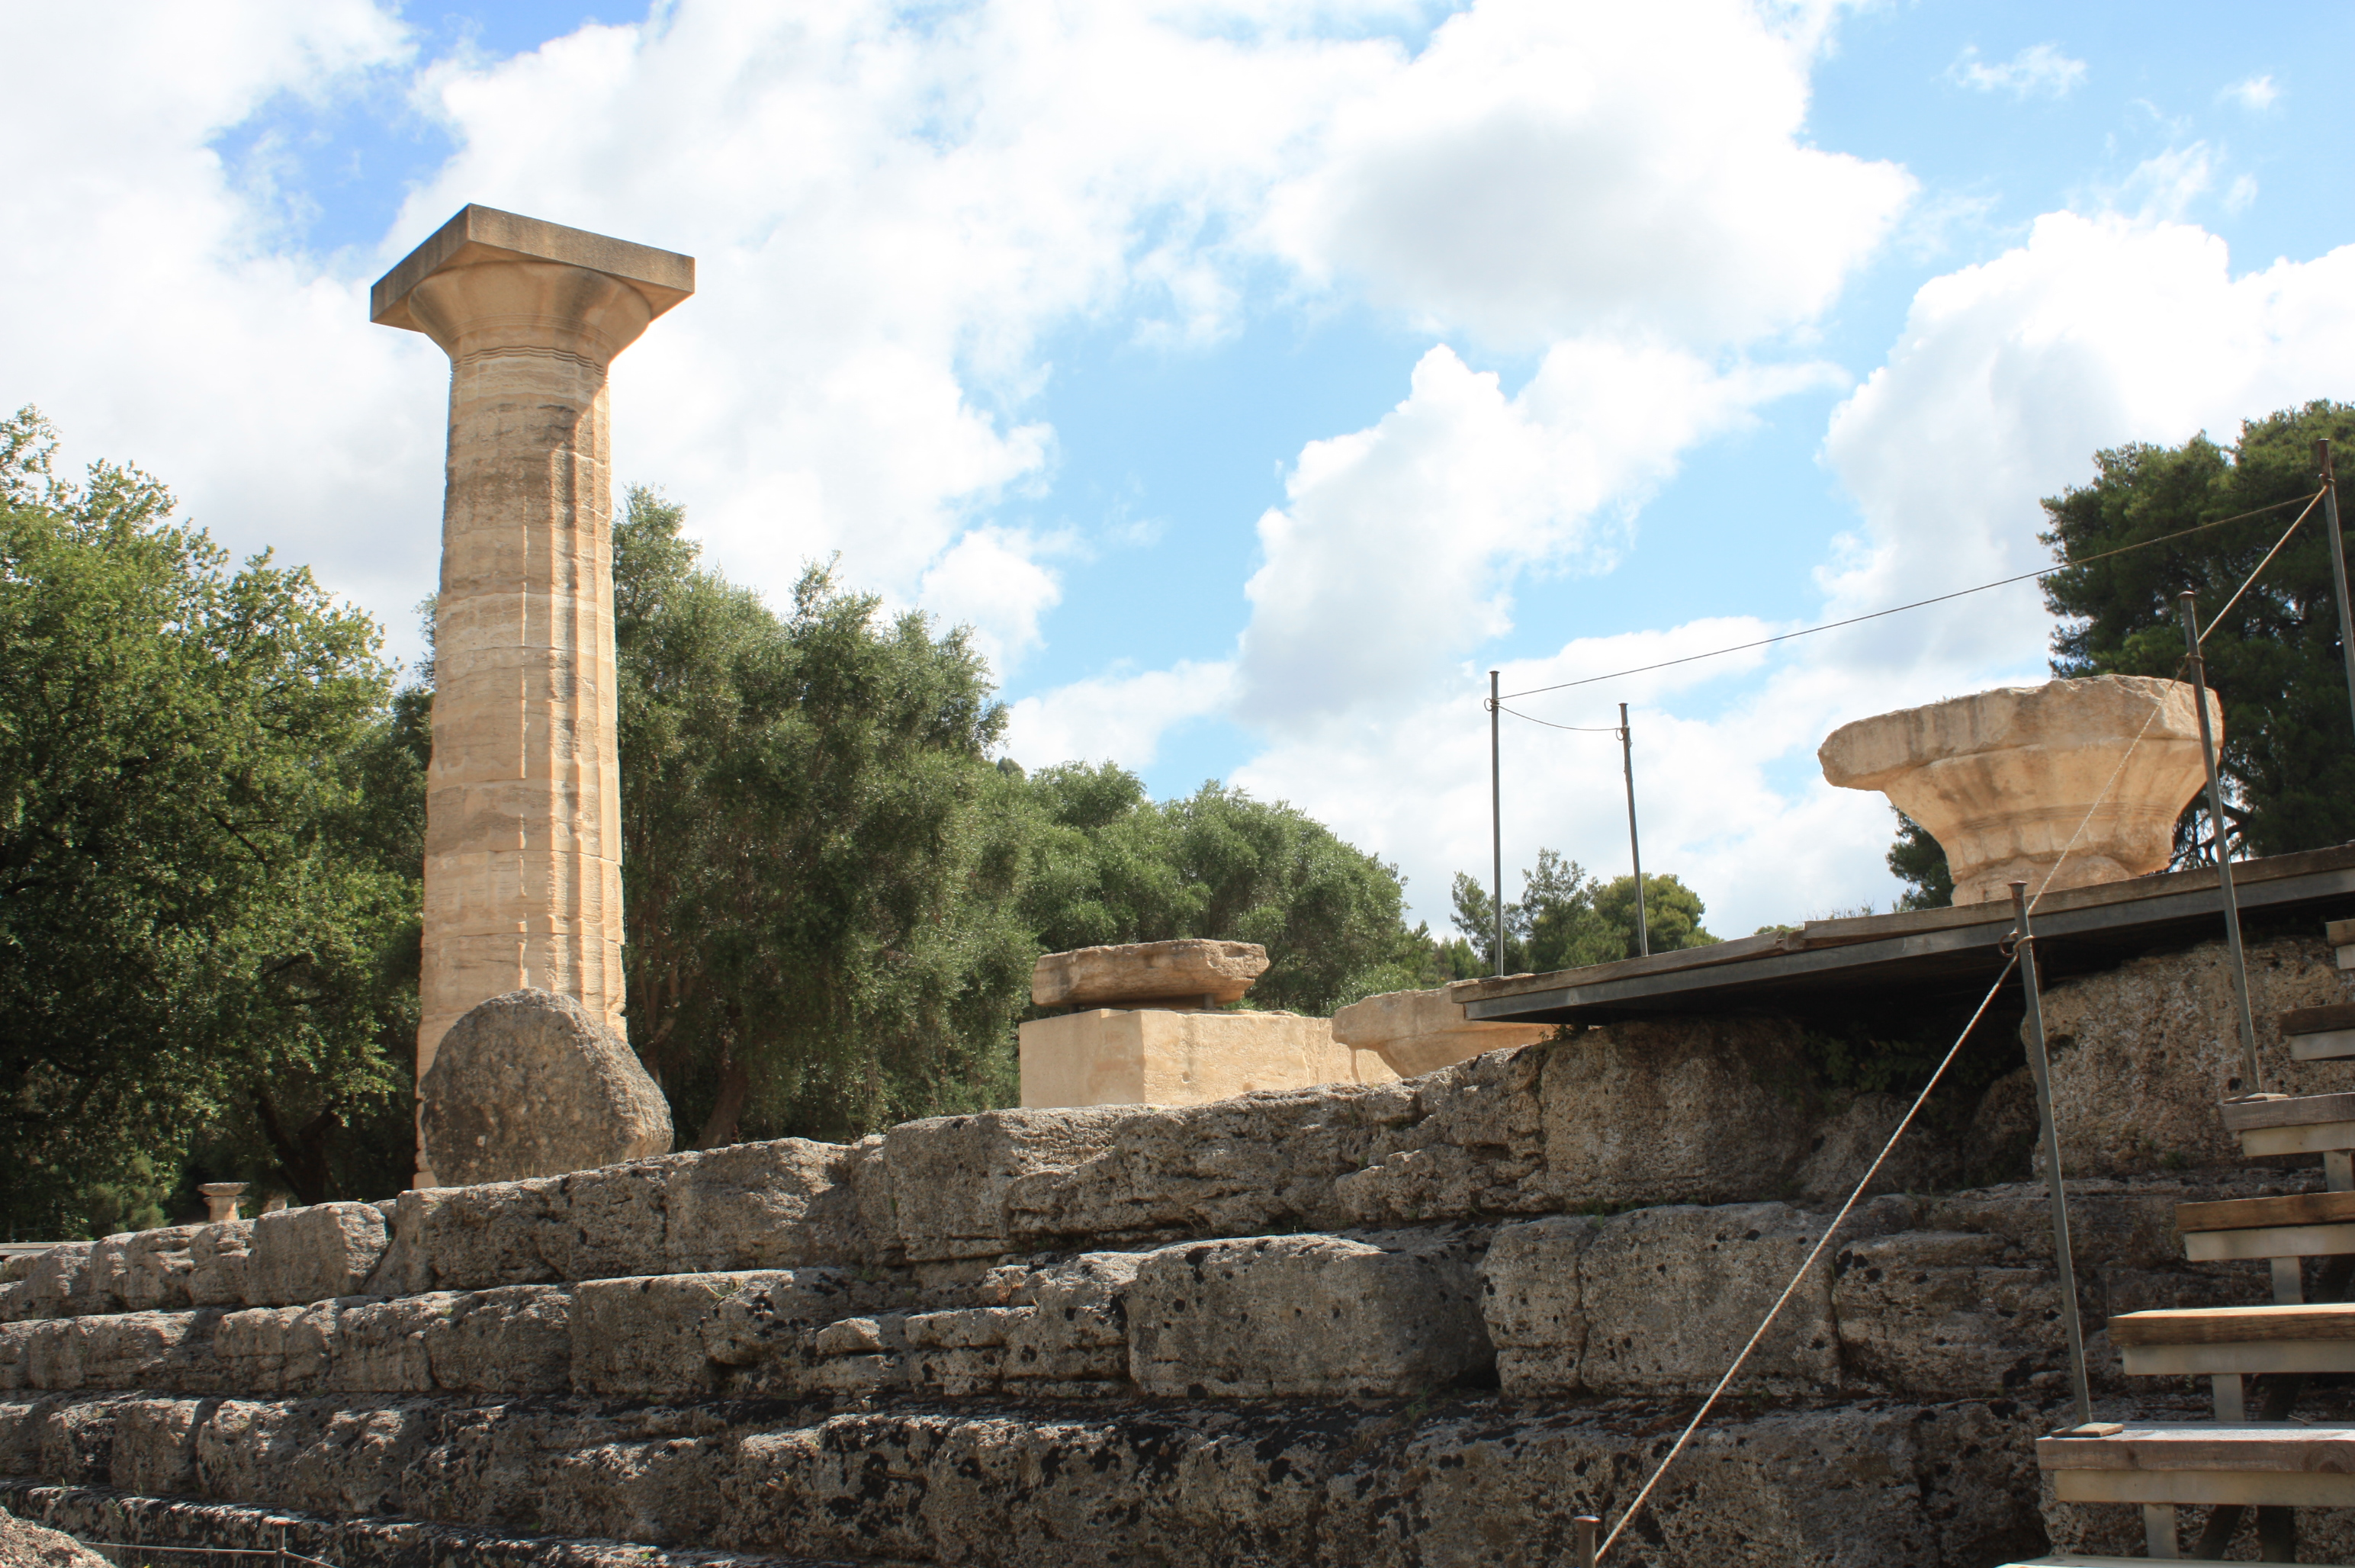 Ruins of the Temple of Zeus with reconstructed pillar